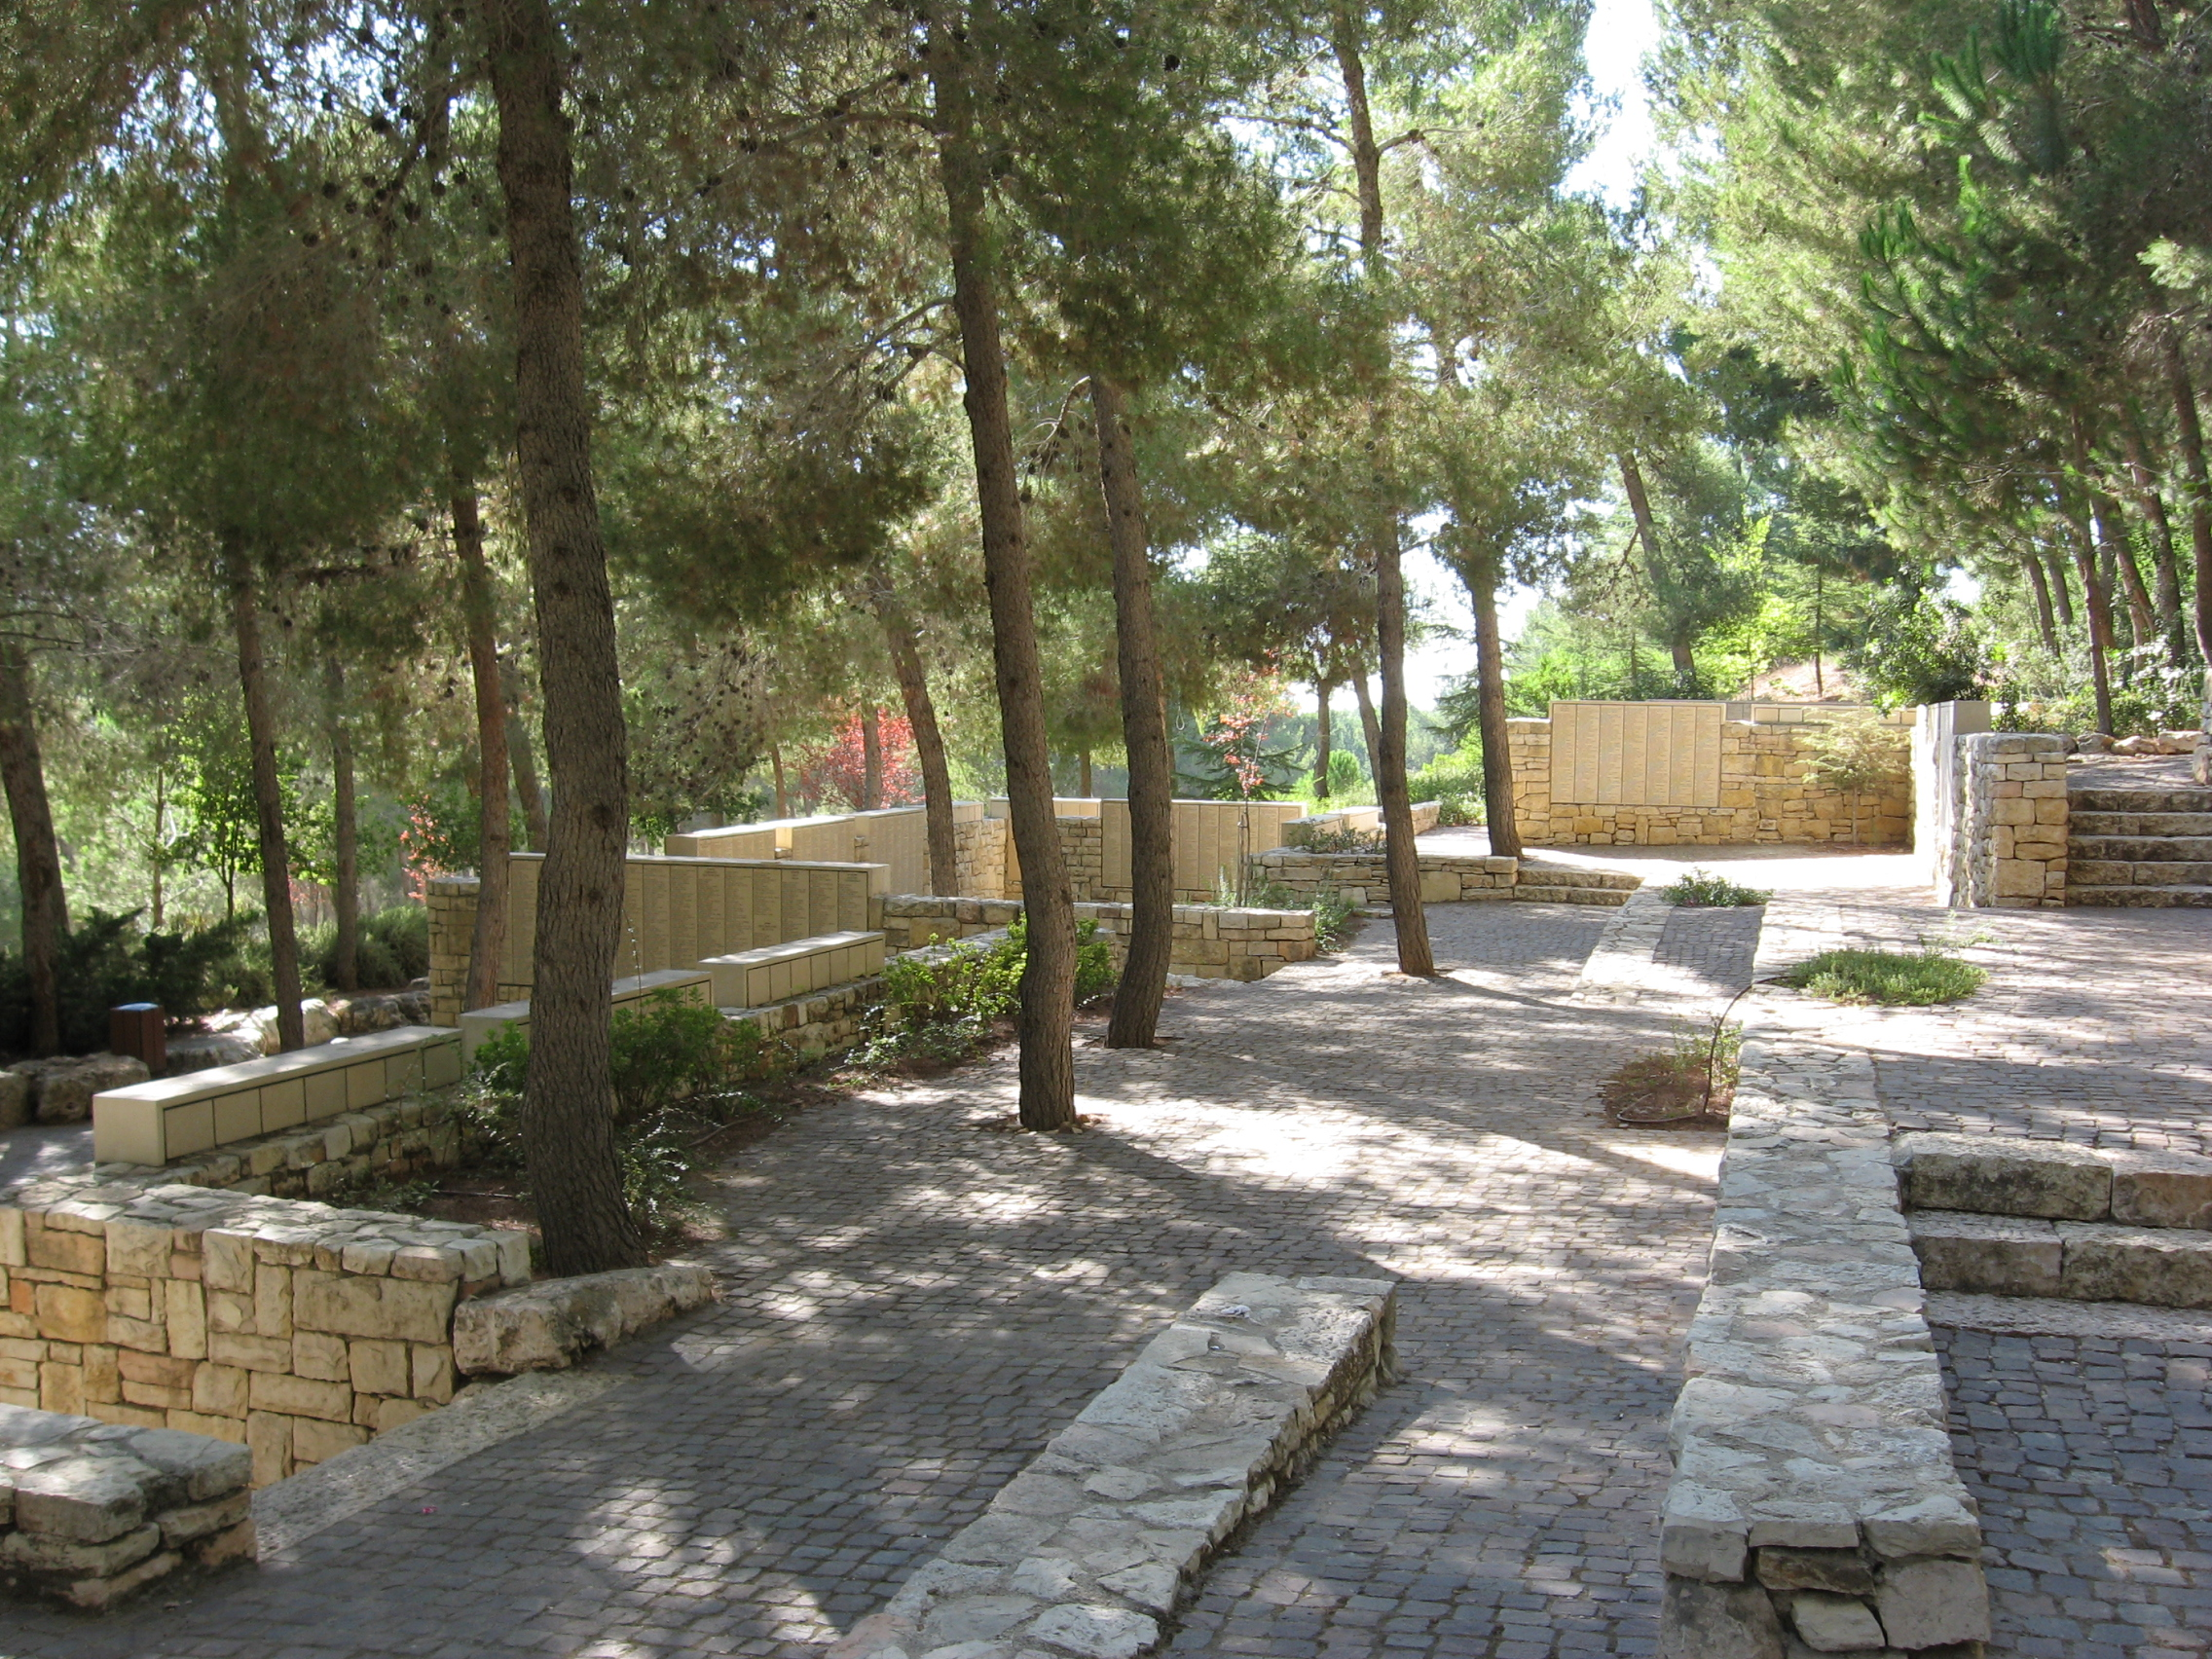 Garden of the Righteous Among the Nations - Wikipedia